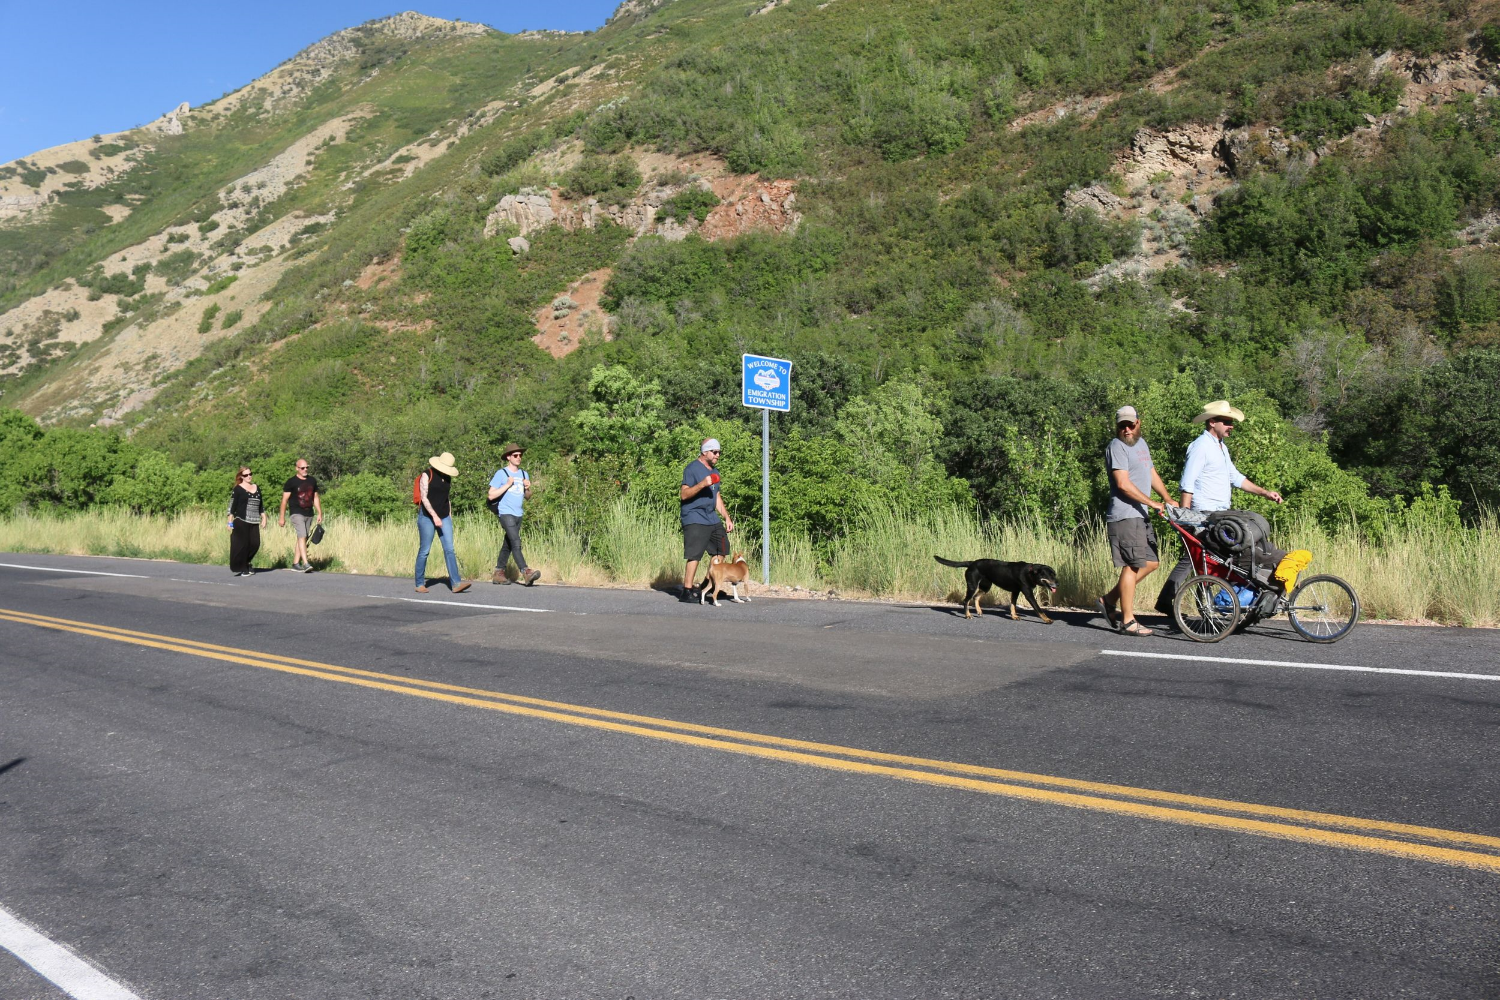 Artist,Adam Bateman walking the final six miles with friendsfrom Immigration Canyon to downtown Salt Lake on July 11, 2015.